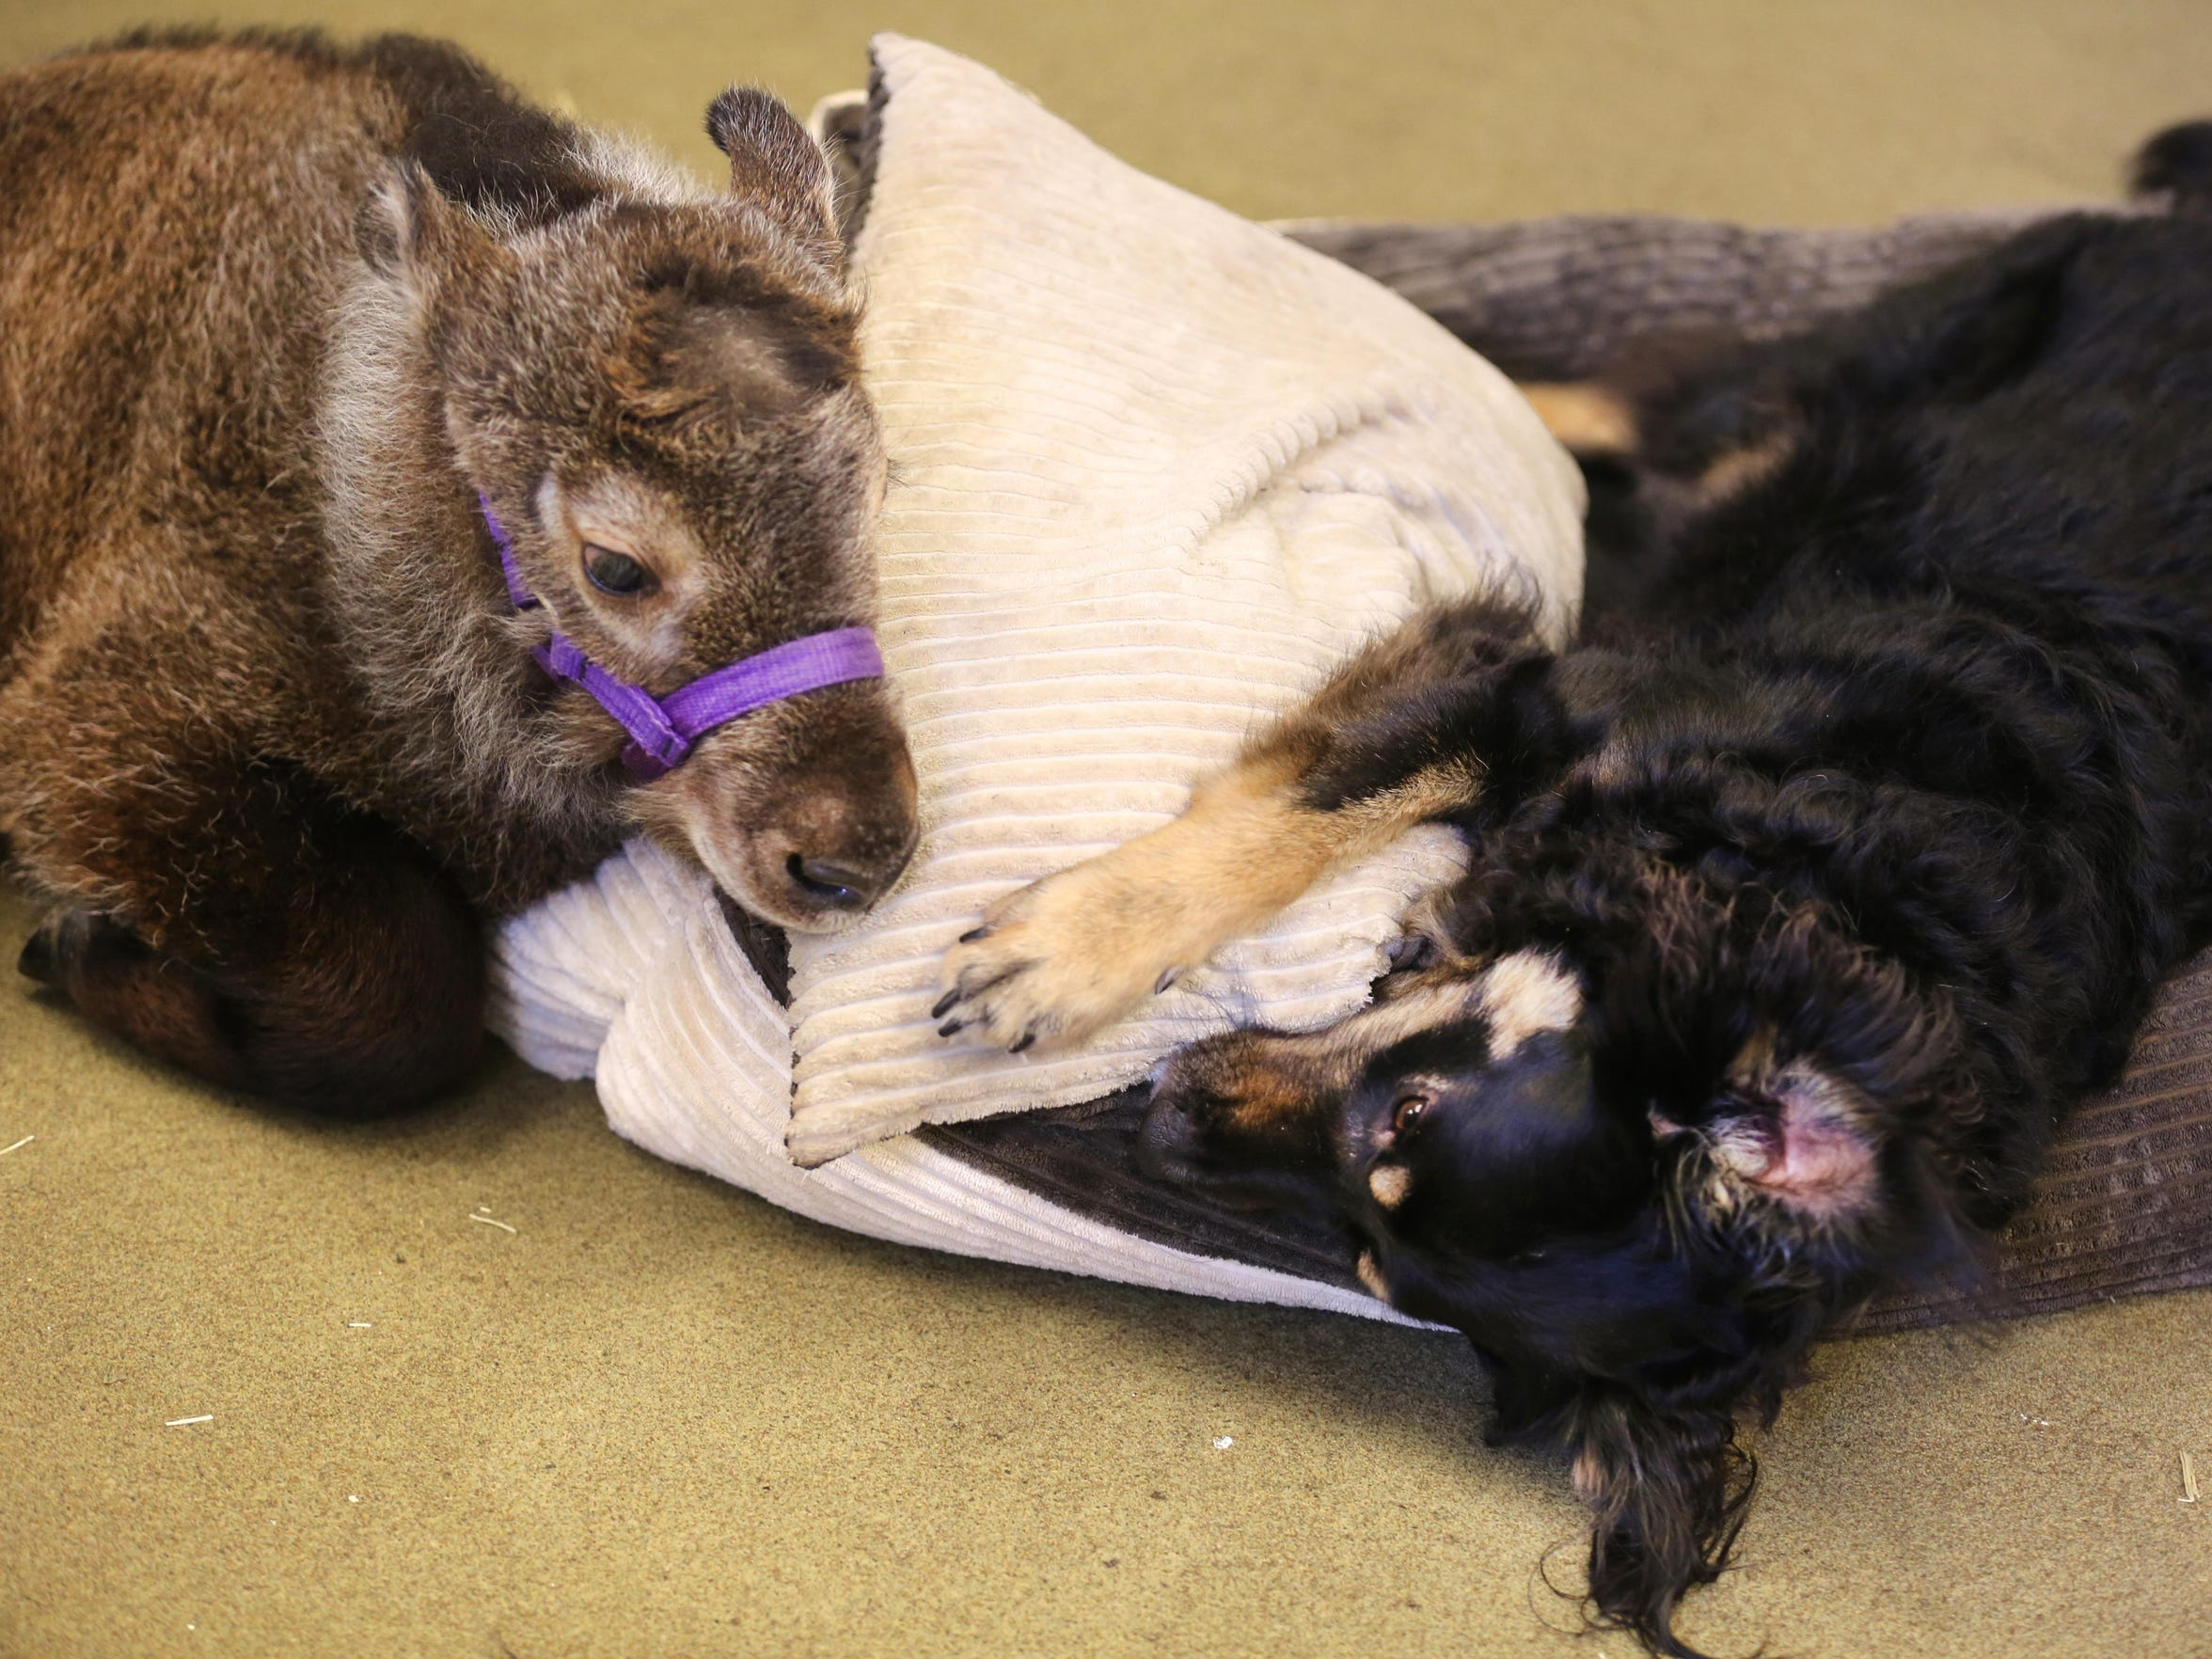 Dale, a six-week-old takin, left, is a temporary house